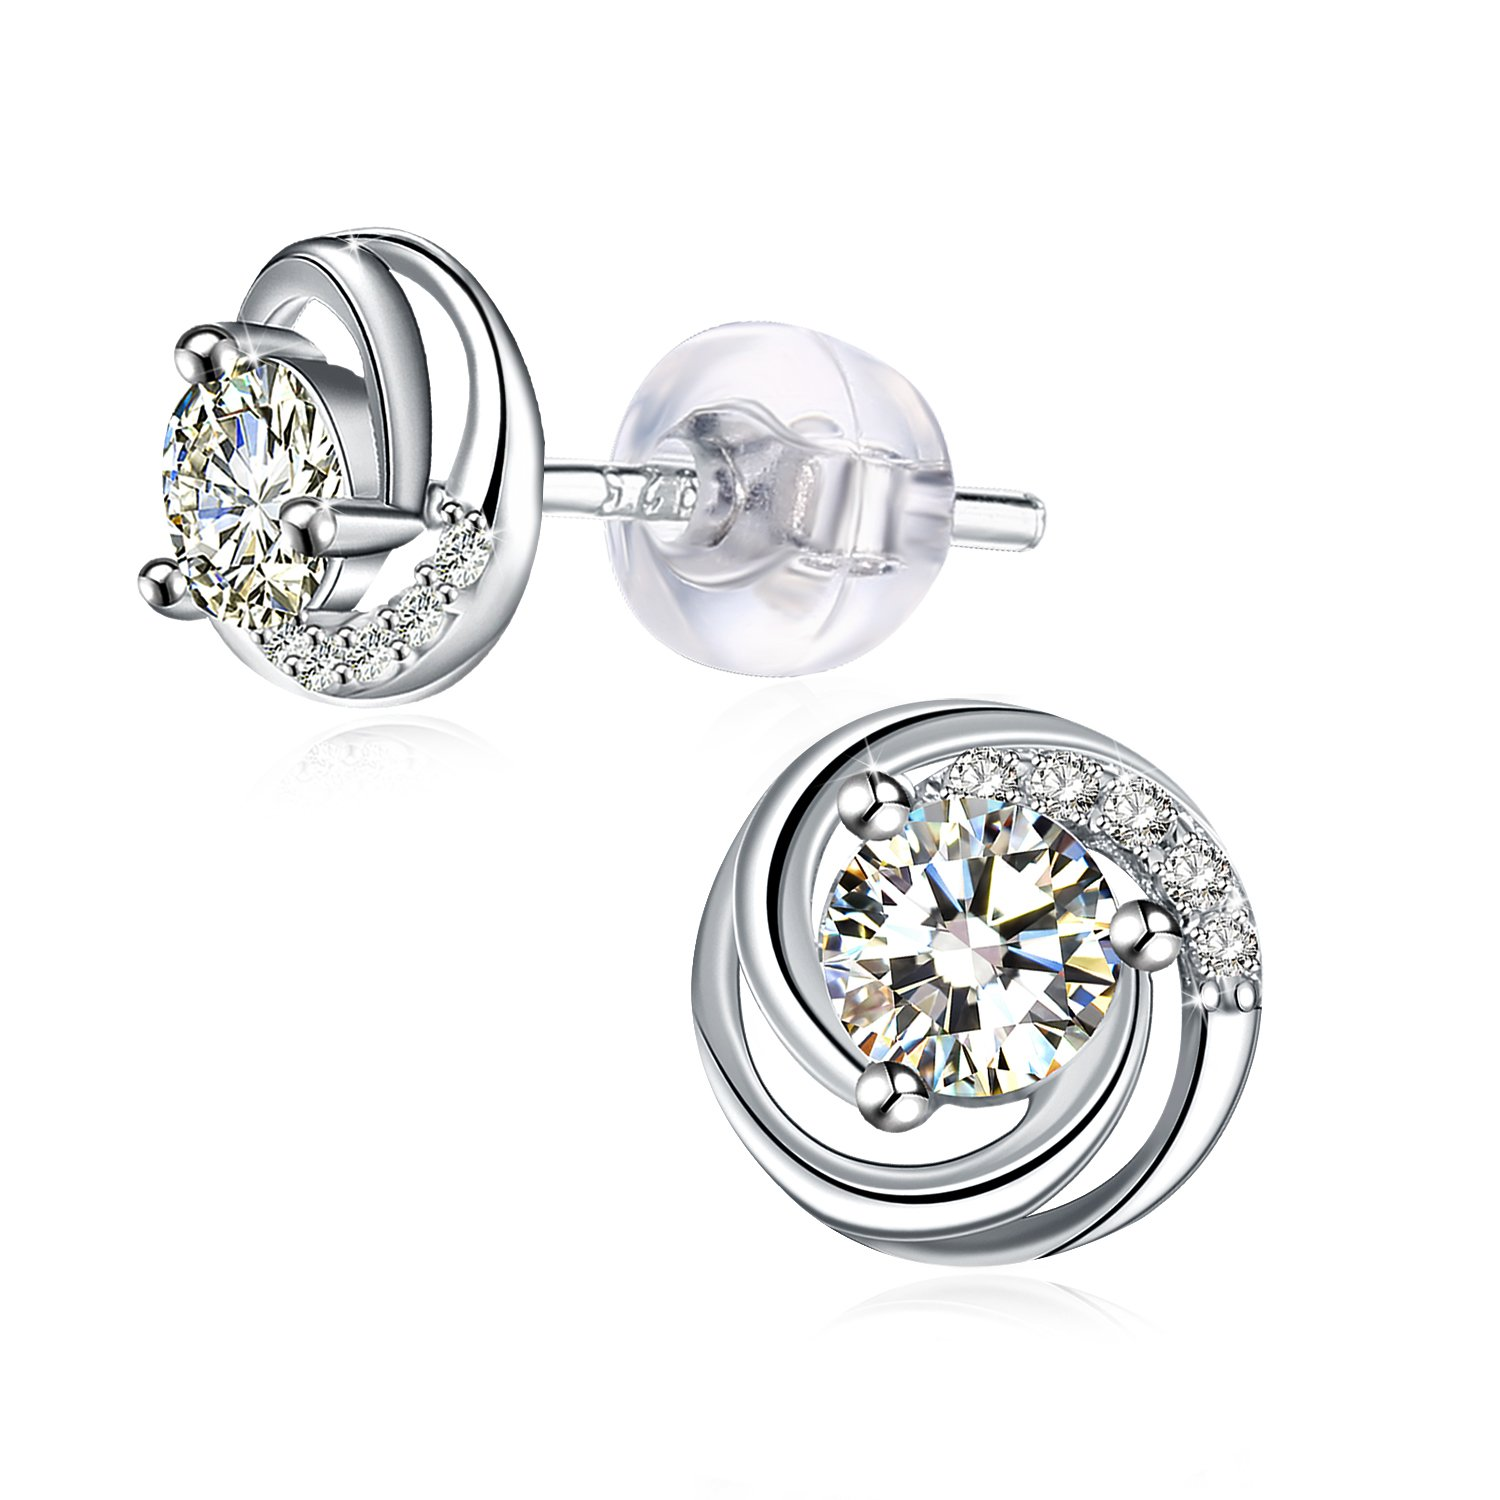 J.Rosée Jewelry 925 Sterling Silver with 3A Cubic Zirconia Stud Earrings Spiral love, Gifts for Women Girls